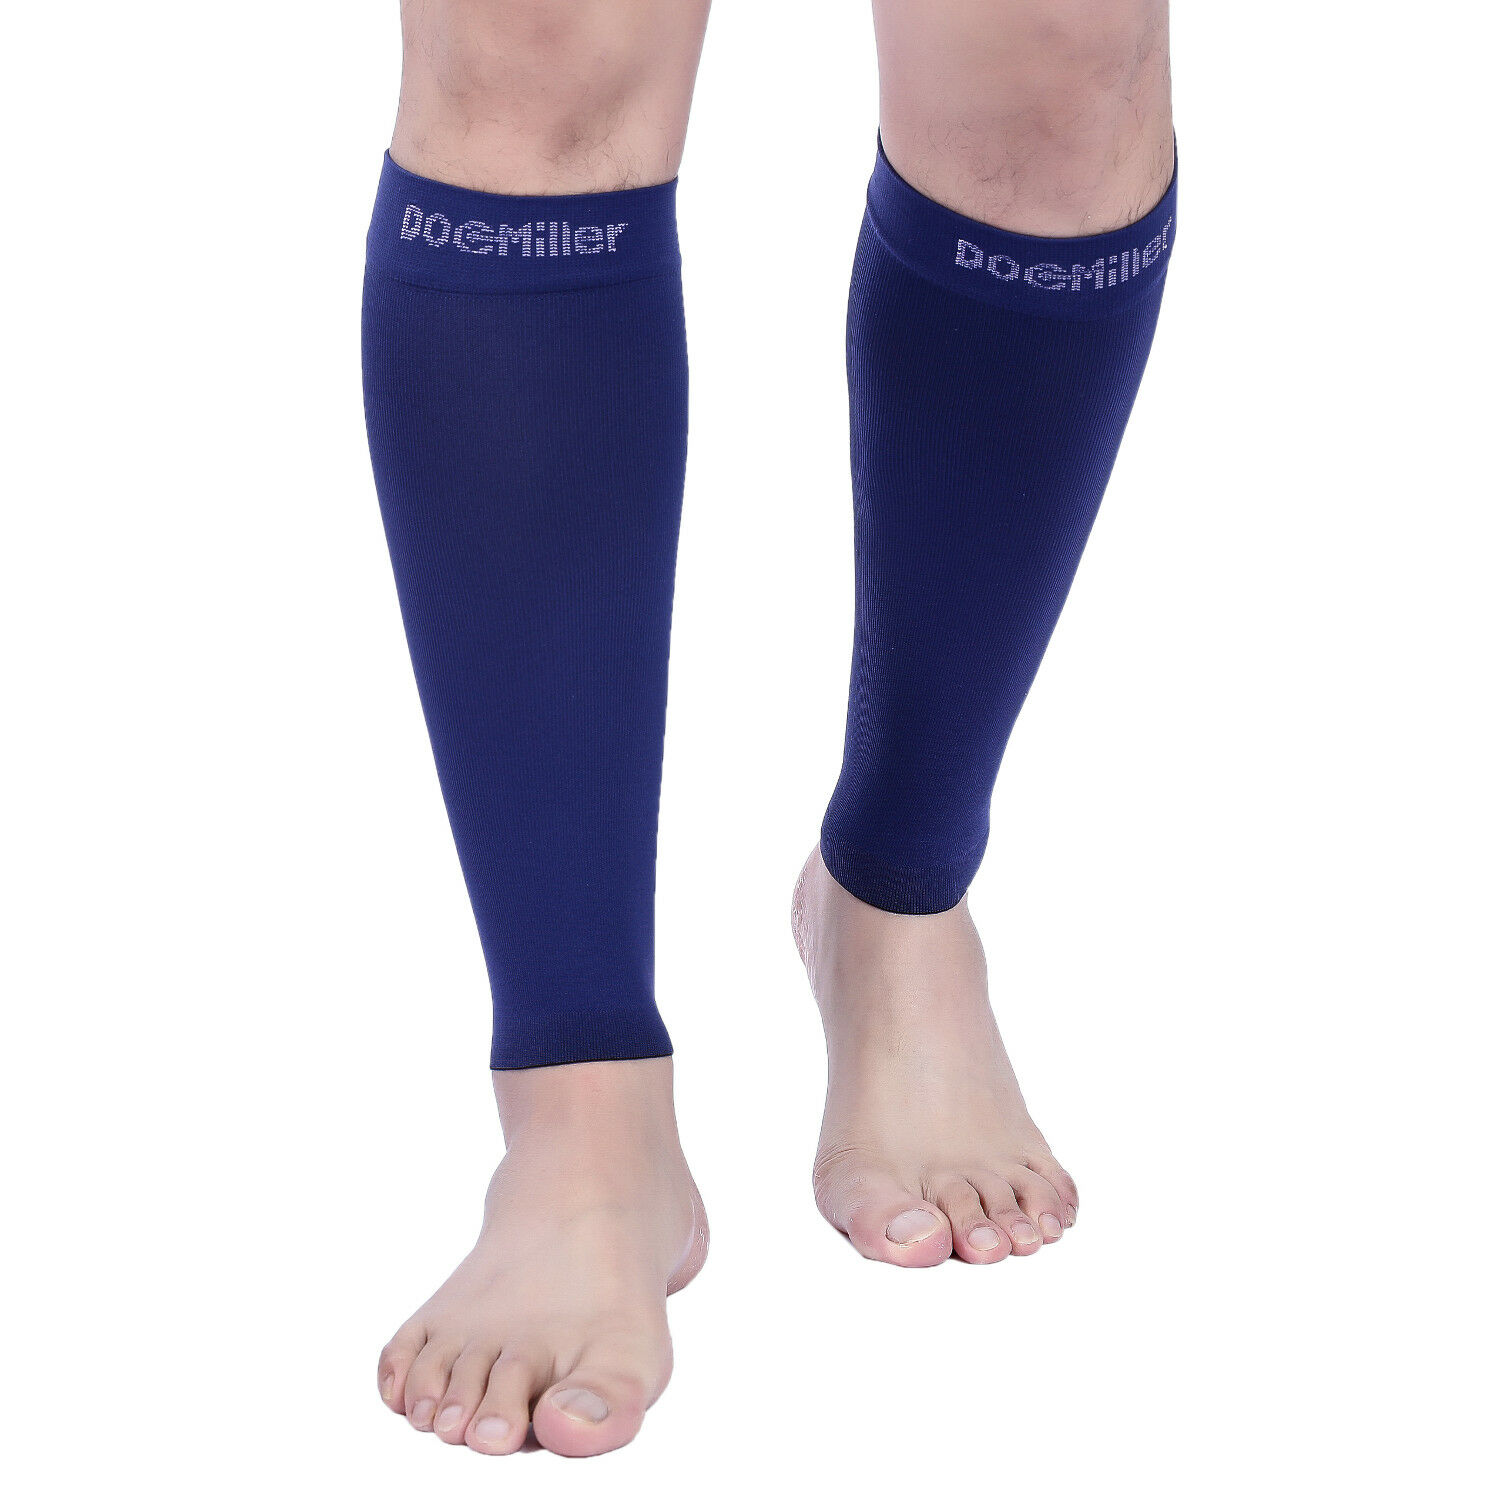 0ea15d47ab5 Details about Doc Miller Calf Compression Sleeve 1 Pair 20-30mmHg Varicose  Recovery DARK BLUE